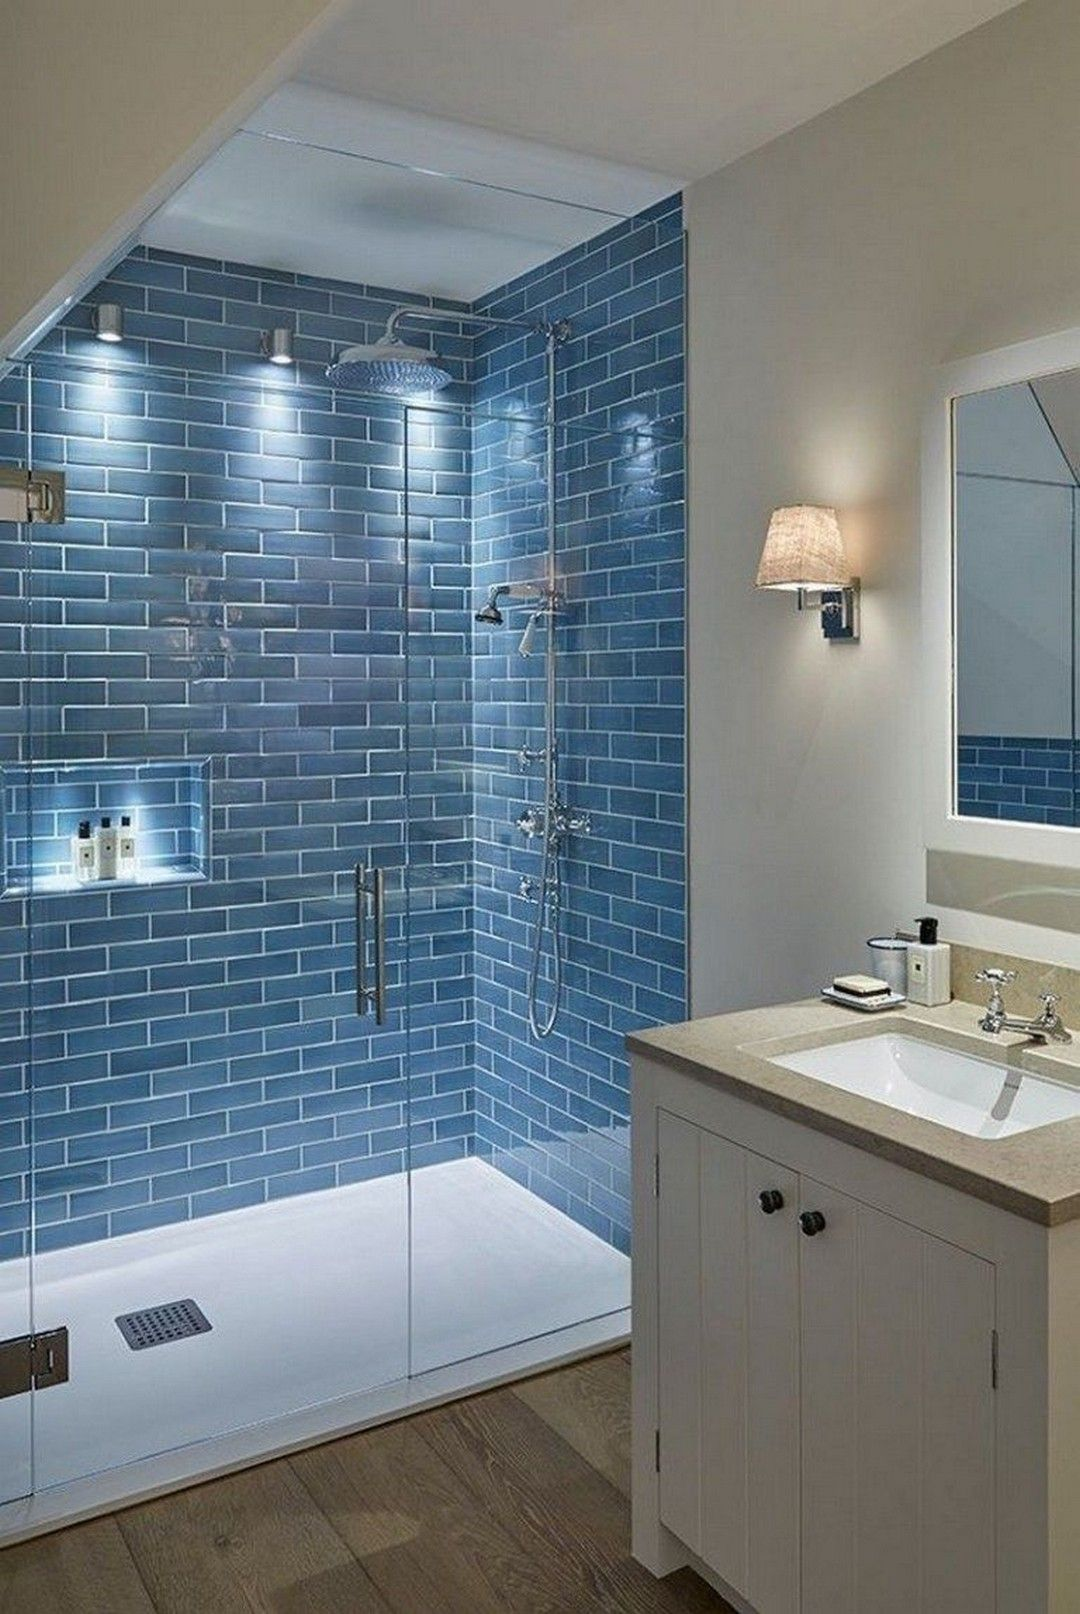 49 Most Popular Basement Bathroom Remodel Ideas On A Budget Low Ceiling And For Small Space In 2020 Simple Bathroom Designs Simple Bathroom Master Bathroom Renovation